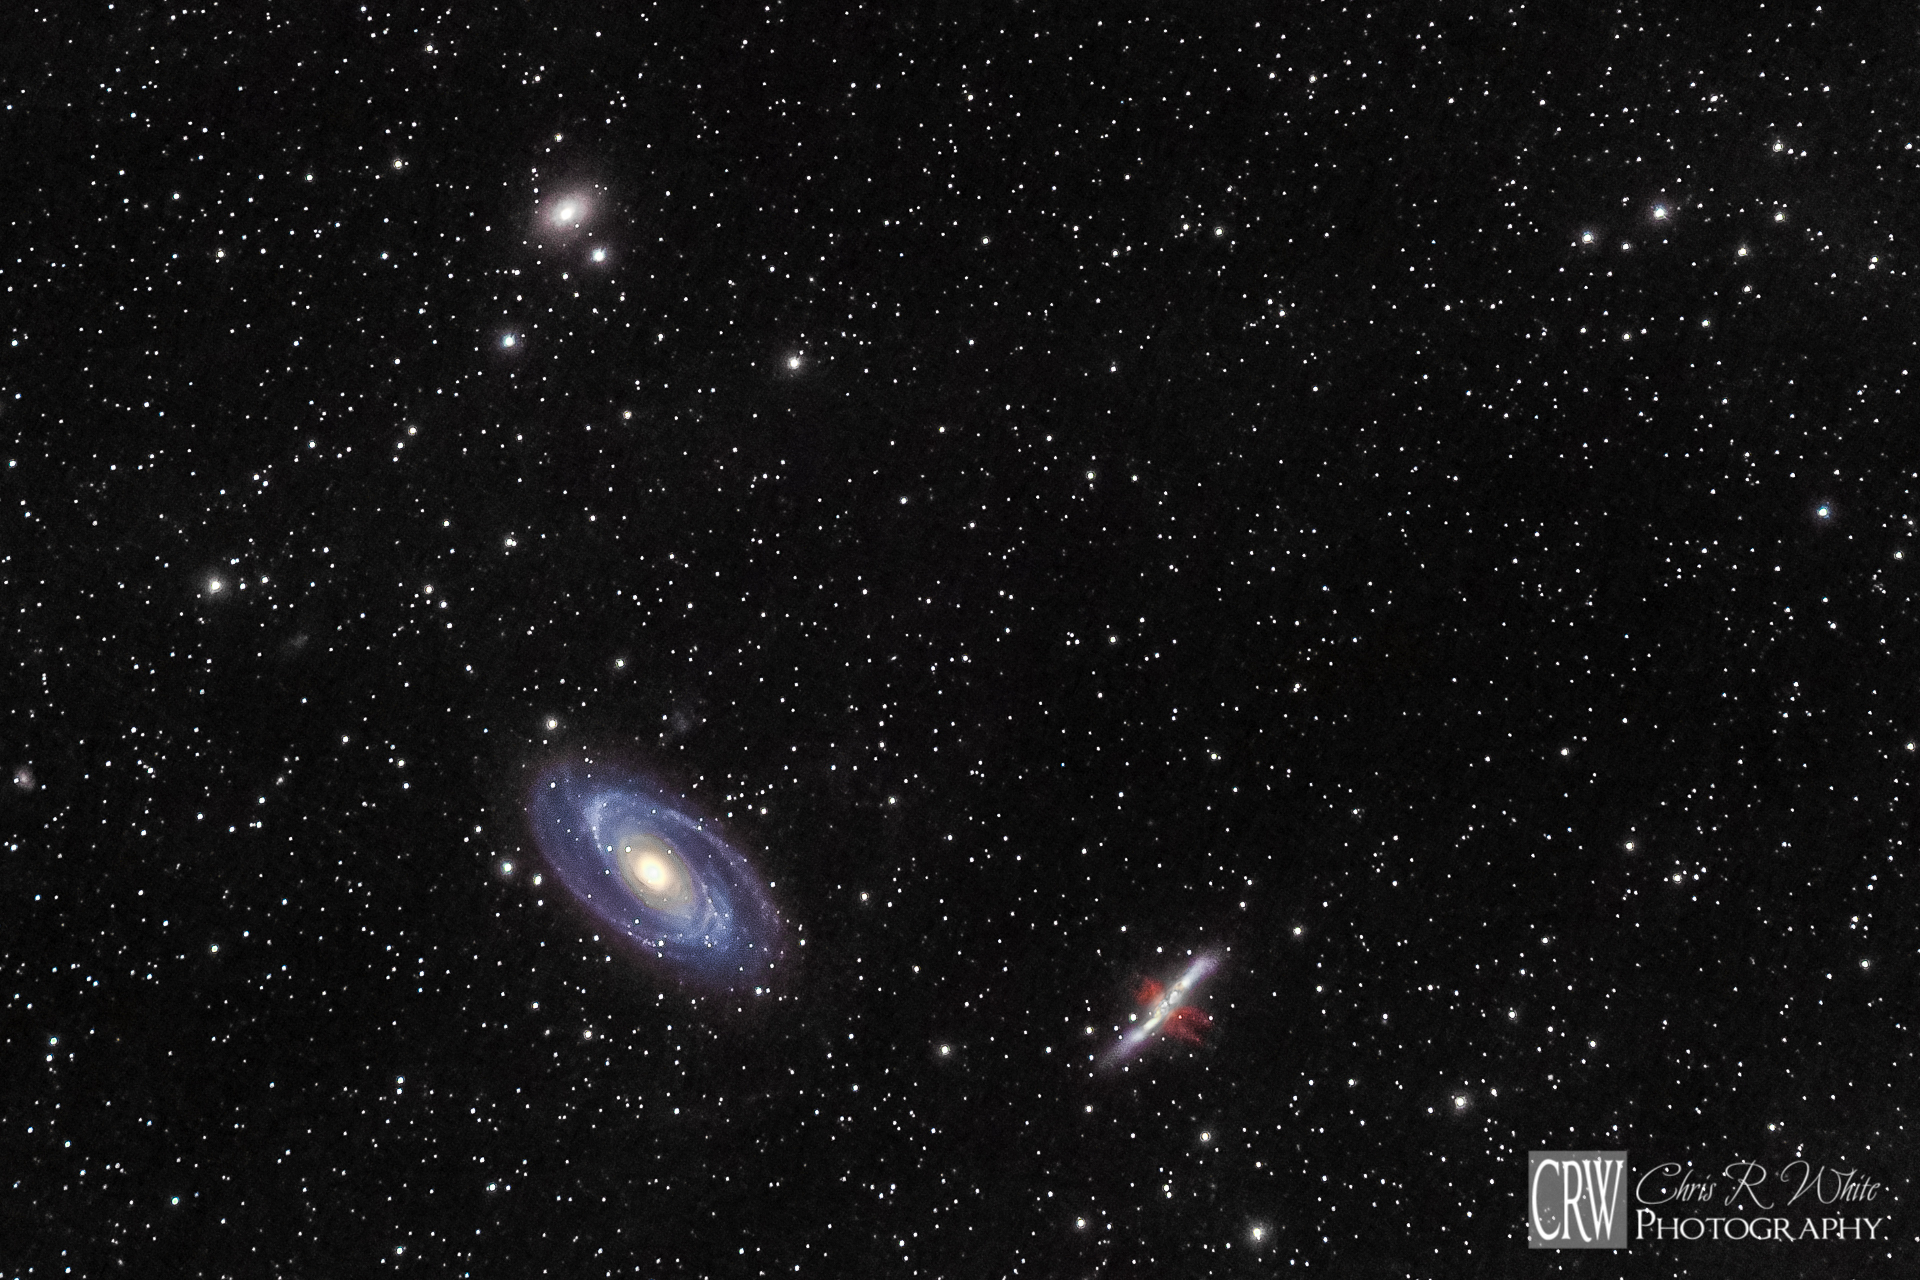 A closer crop for composition to better isolate M81 and M82.